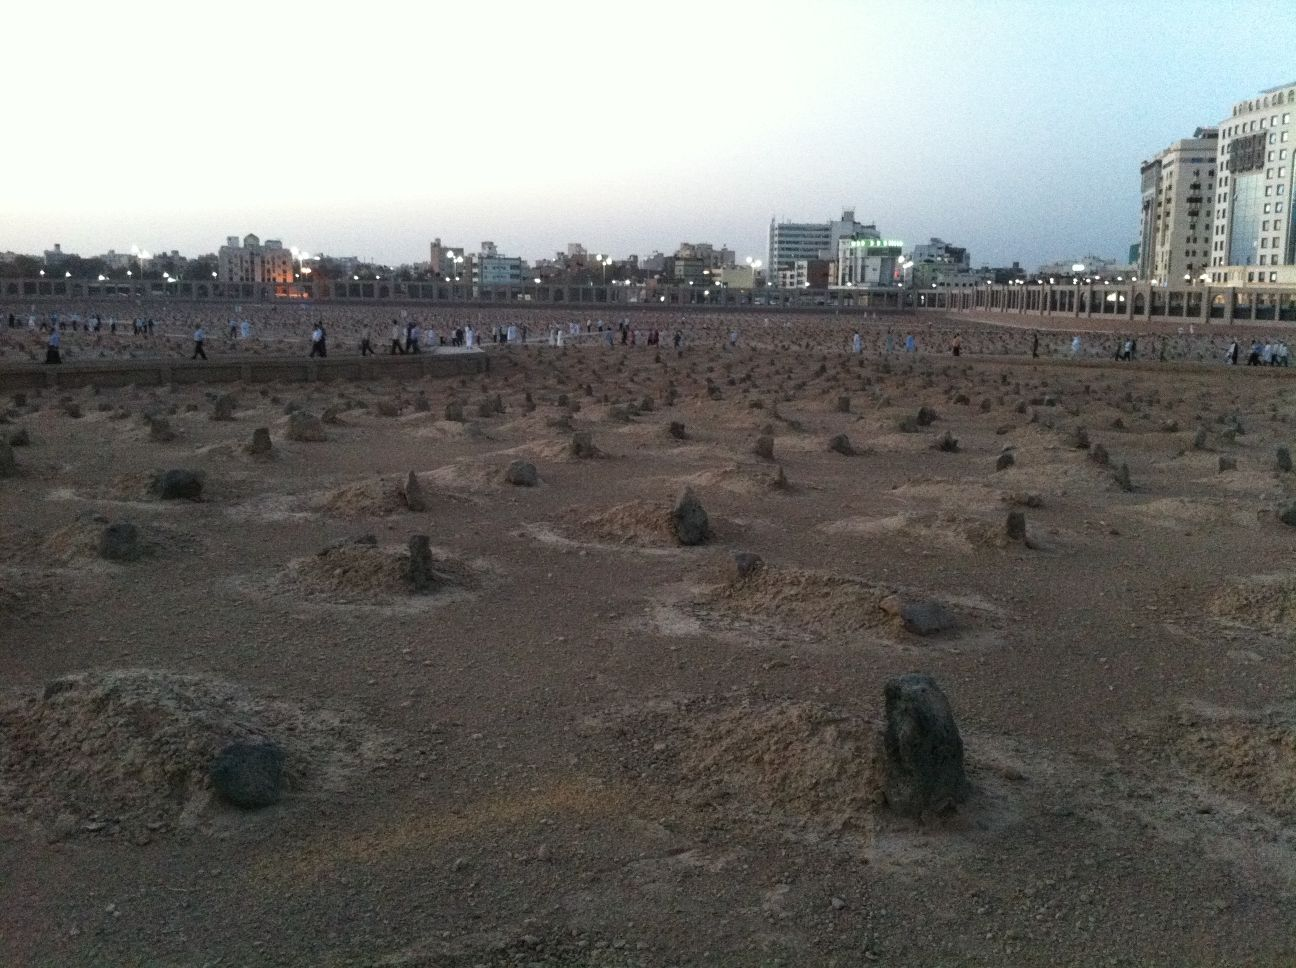 Jannat UL Baqi http://inamabidi.blogspot.com/2011/06/journey-to-heart-of-islam.html